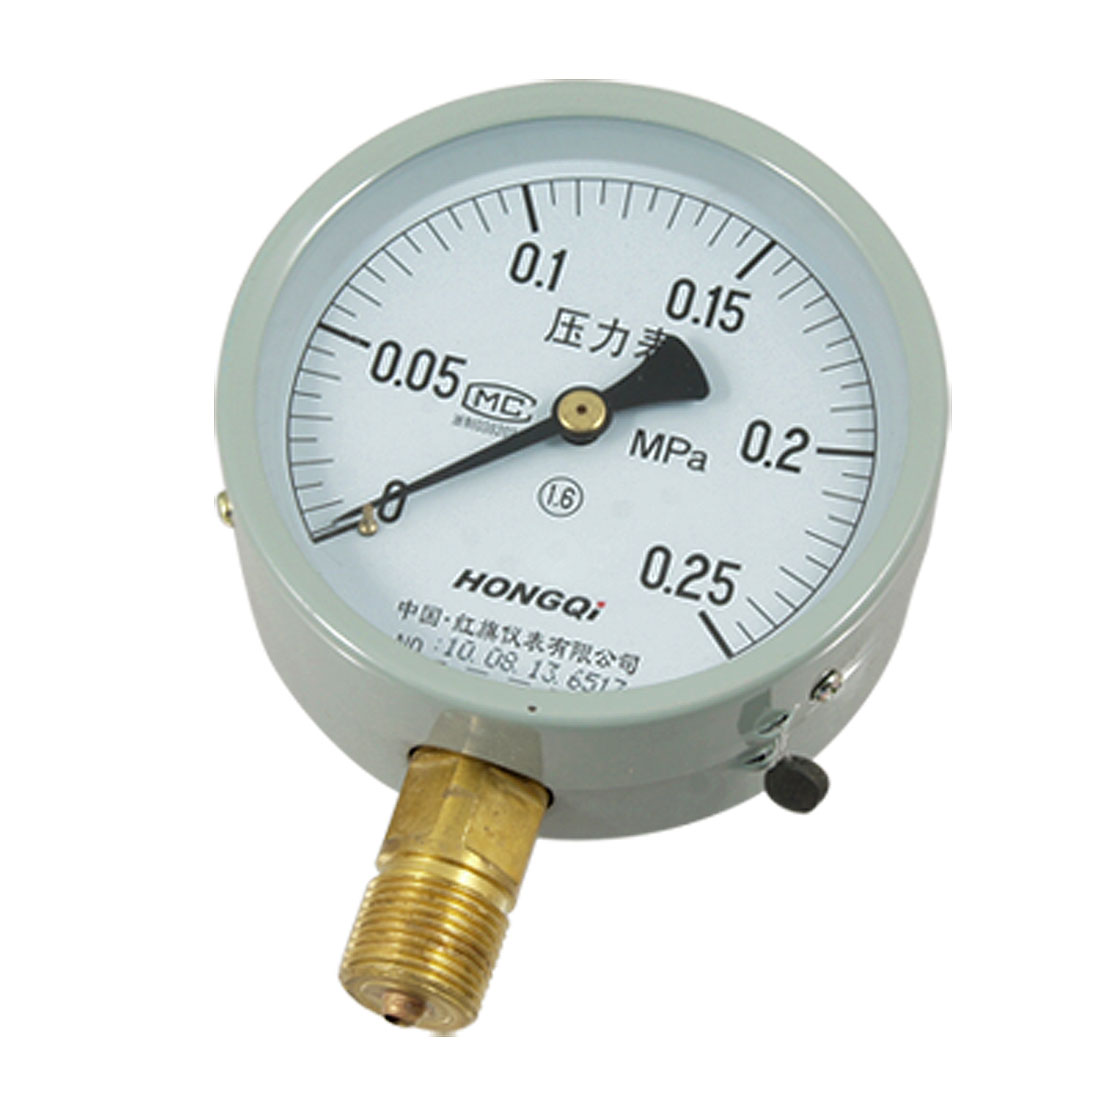 Air Water 1.6 Accuracy Class 0.25 Mpa Pressure Gauge